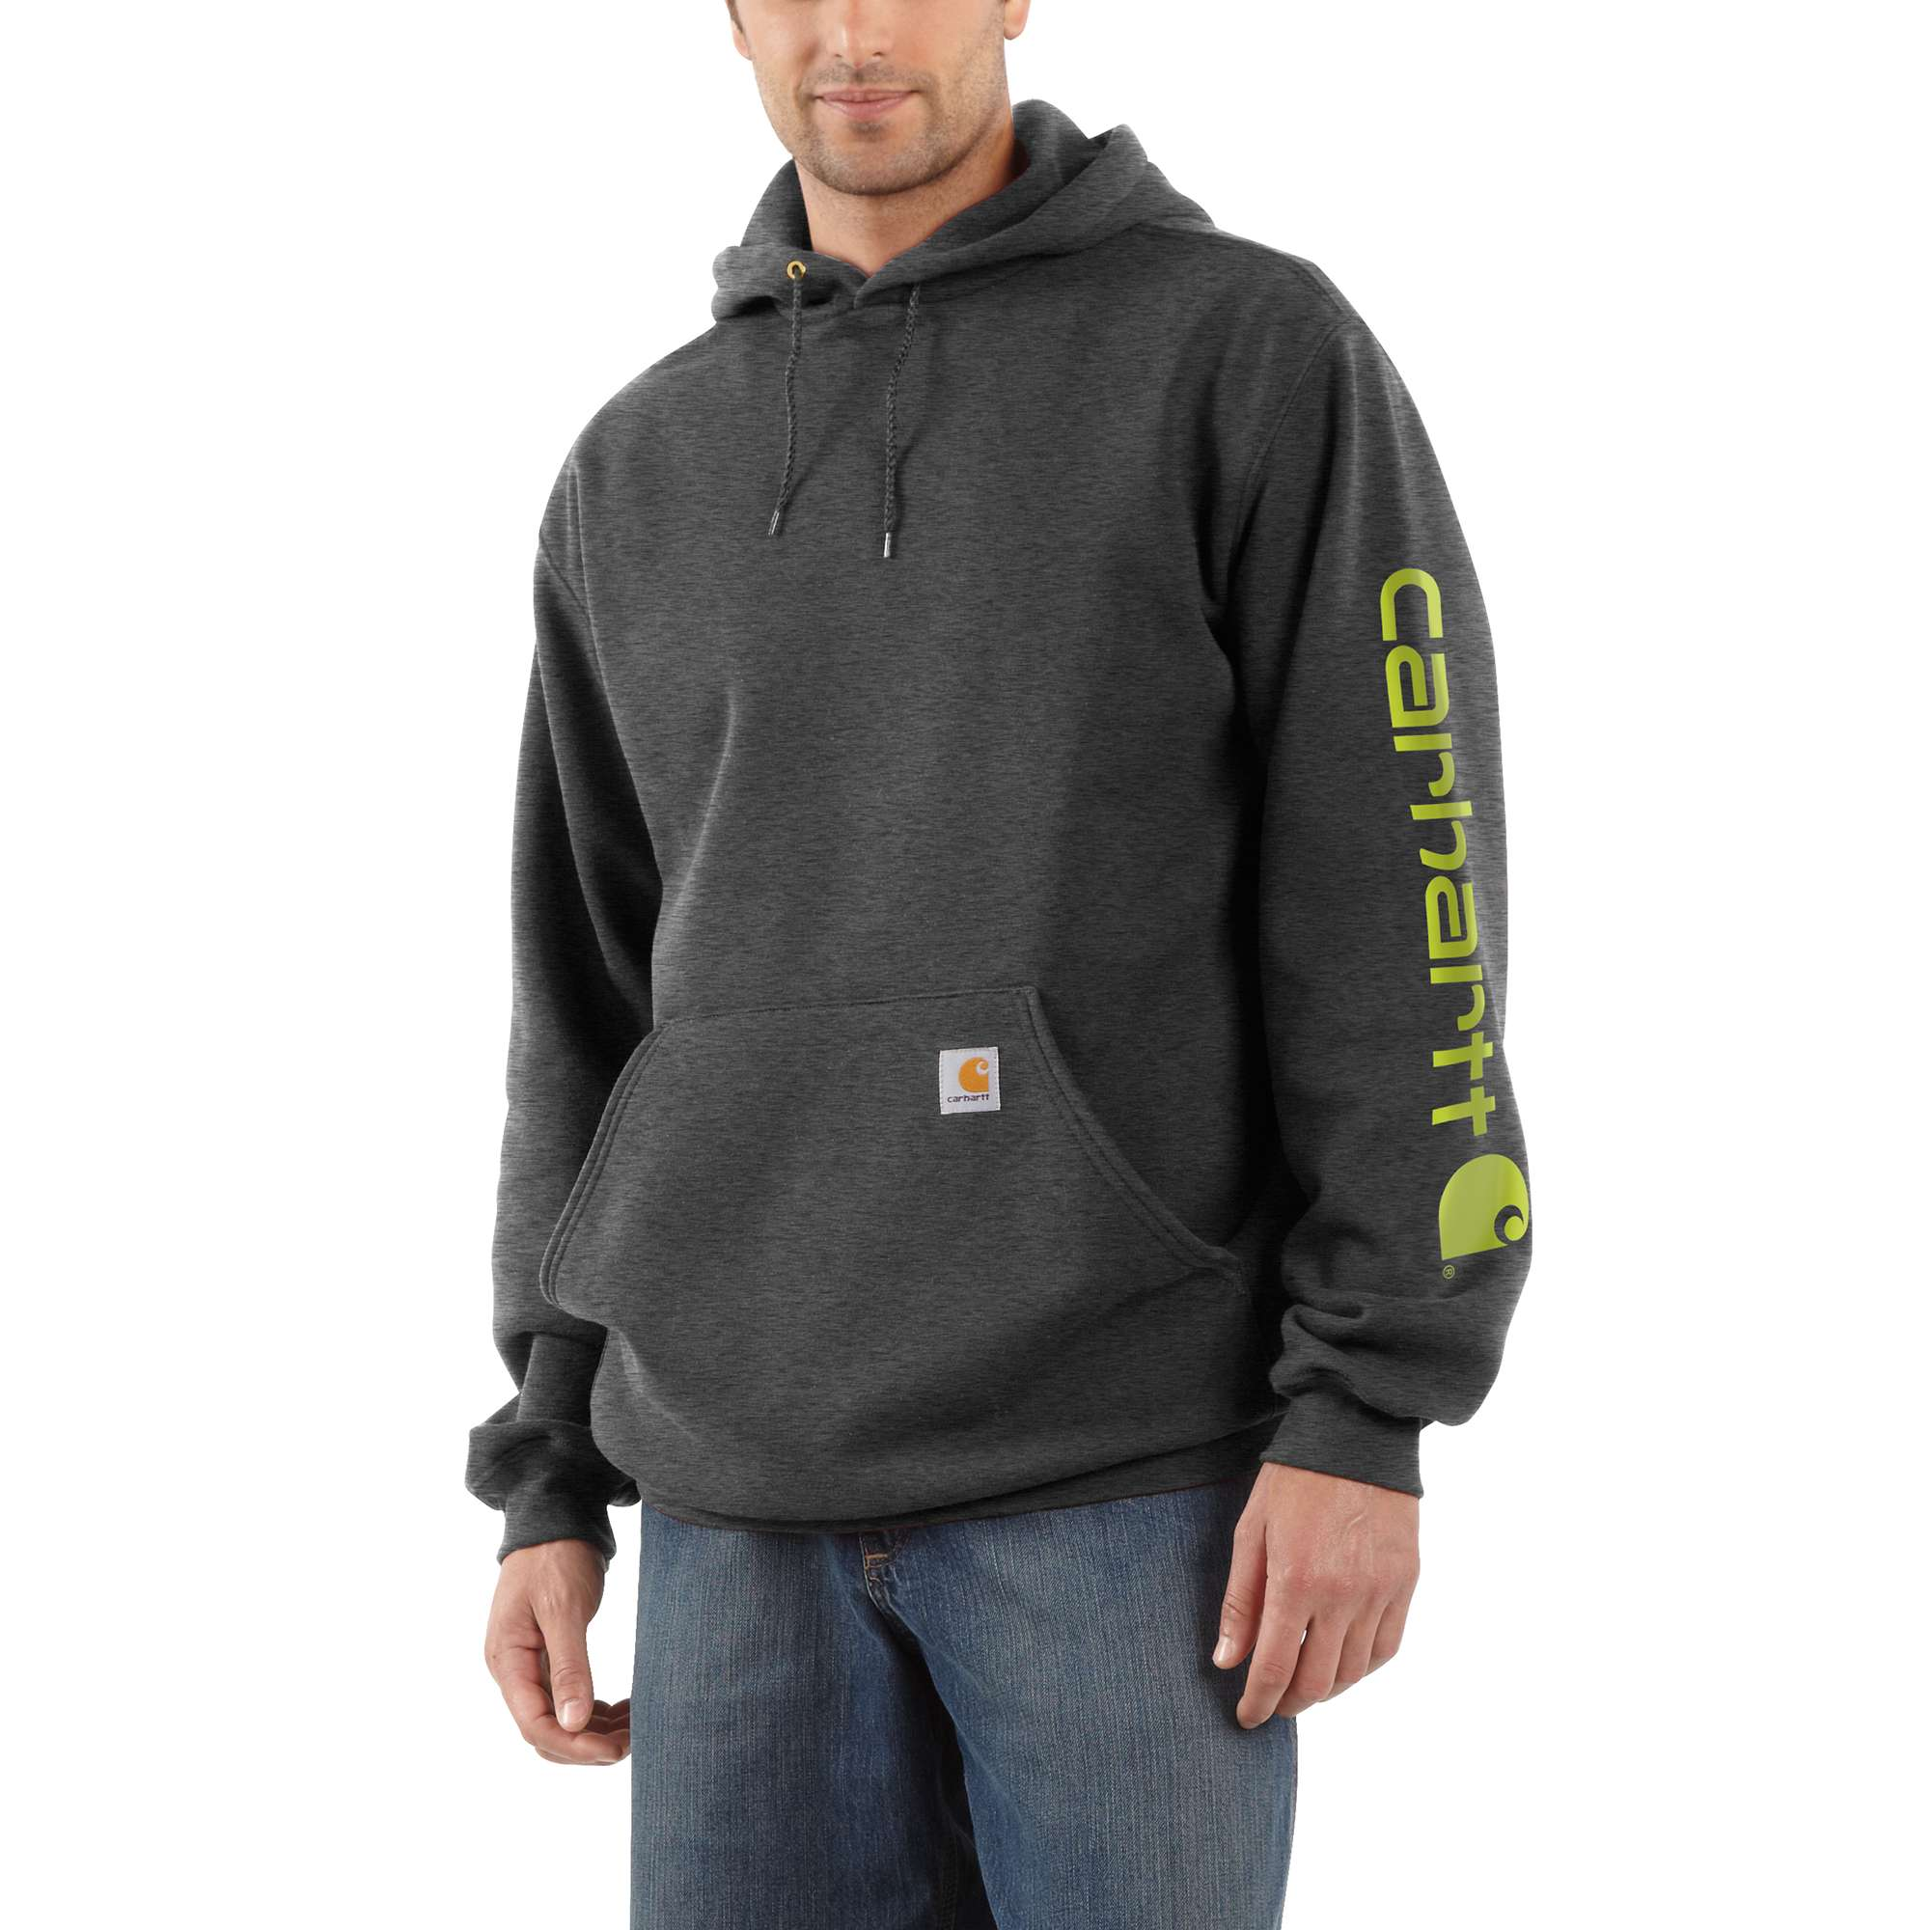 Men's Midweight Signature Logo Sleeve Hooded Sweat, Gray, swatch